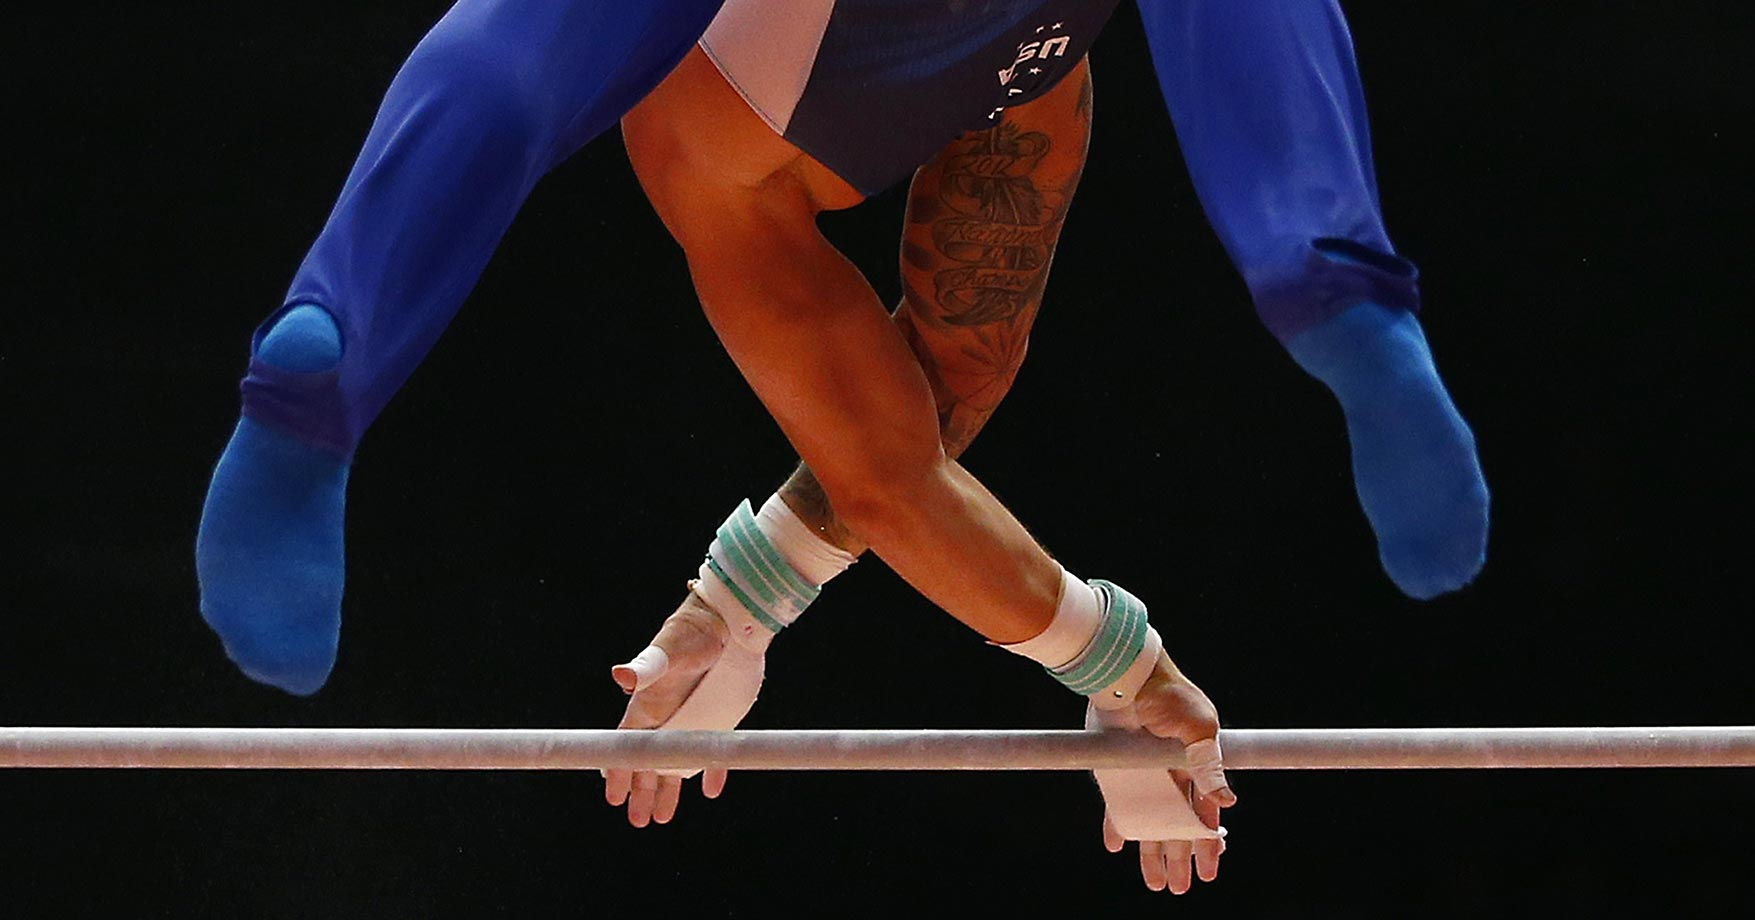 Paul Ruggeri performs on the horizontal bar at the World Artistic Gymnastics championships in Glasgow, Scotland.